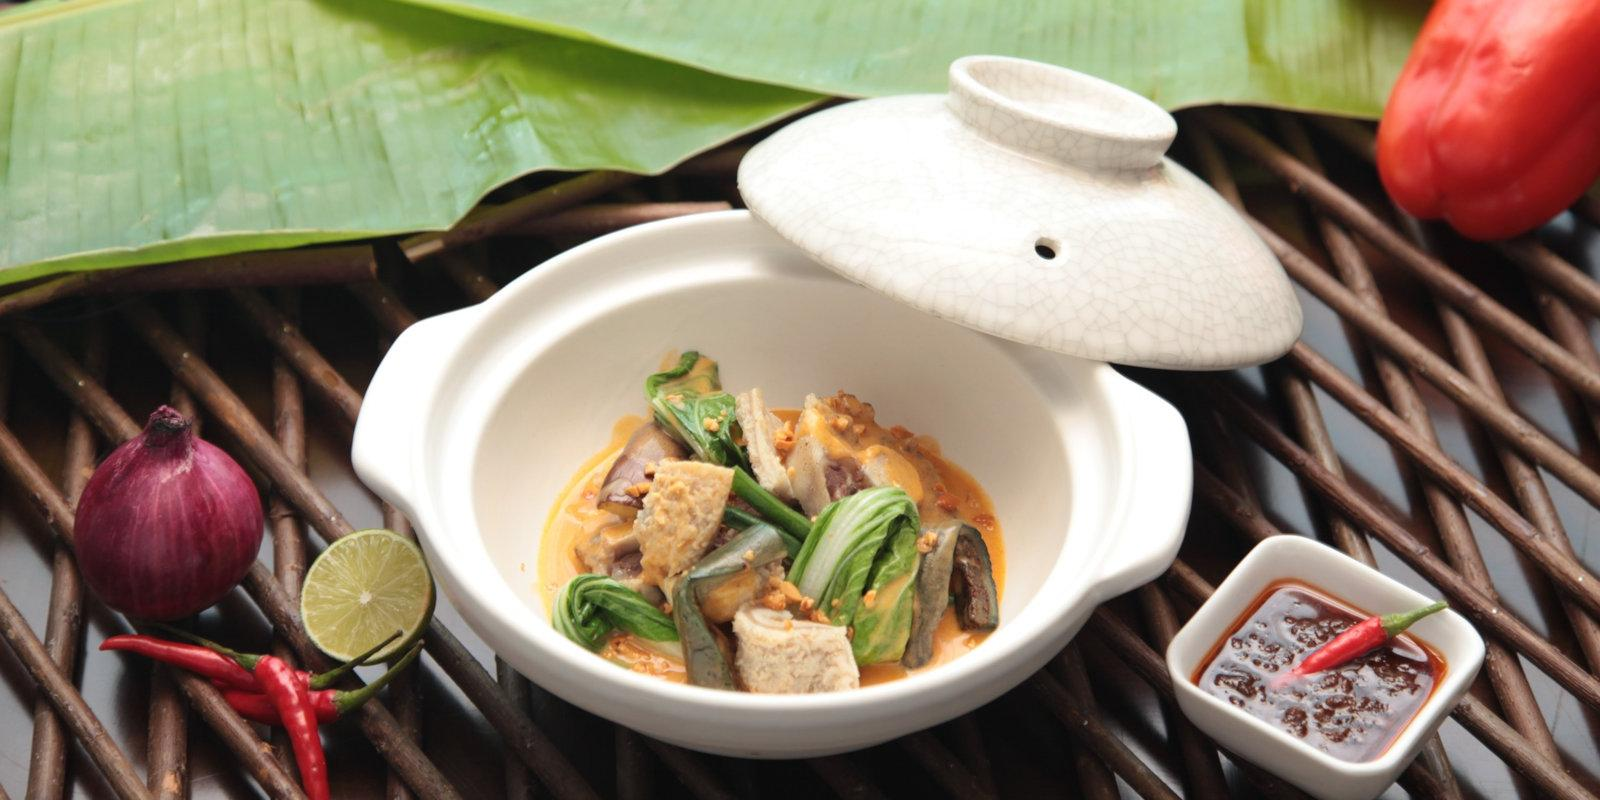 Kare kare is a delicious type of stew from the Philippines